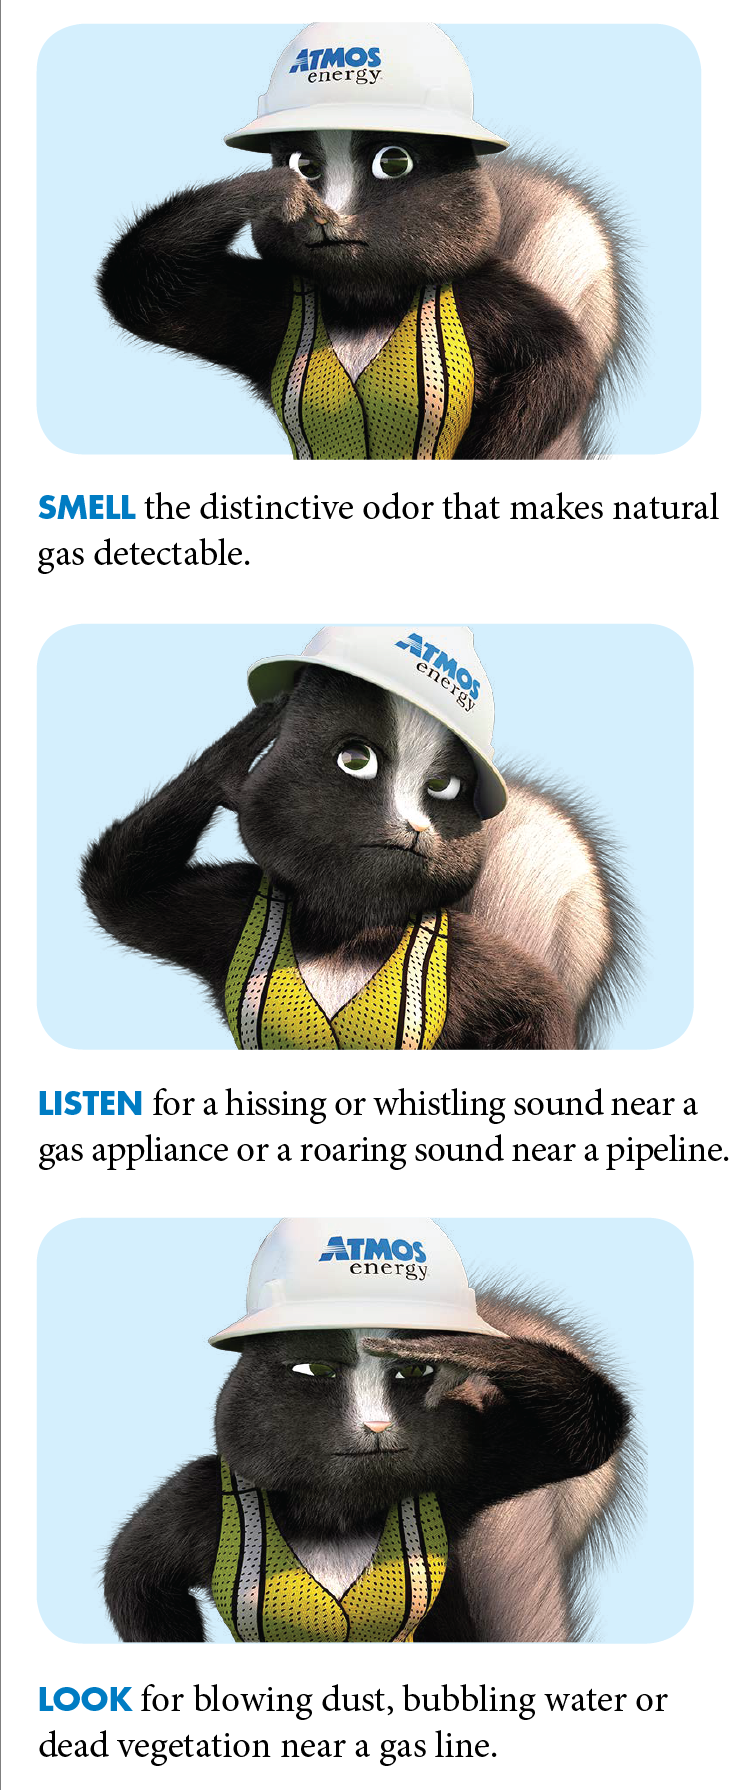 Does A Natural Gas Leak Smell Like A Skunk